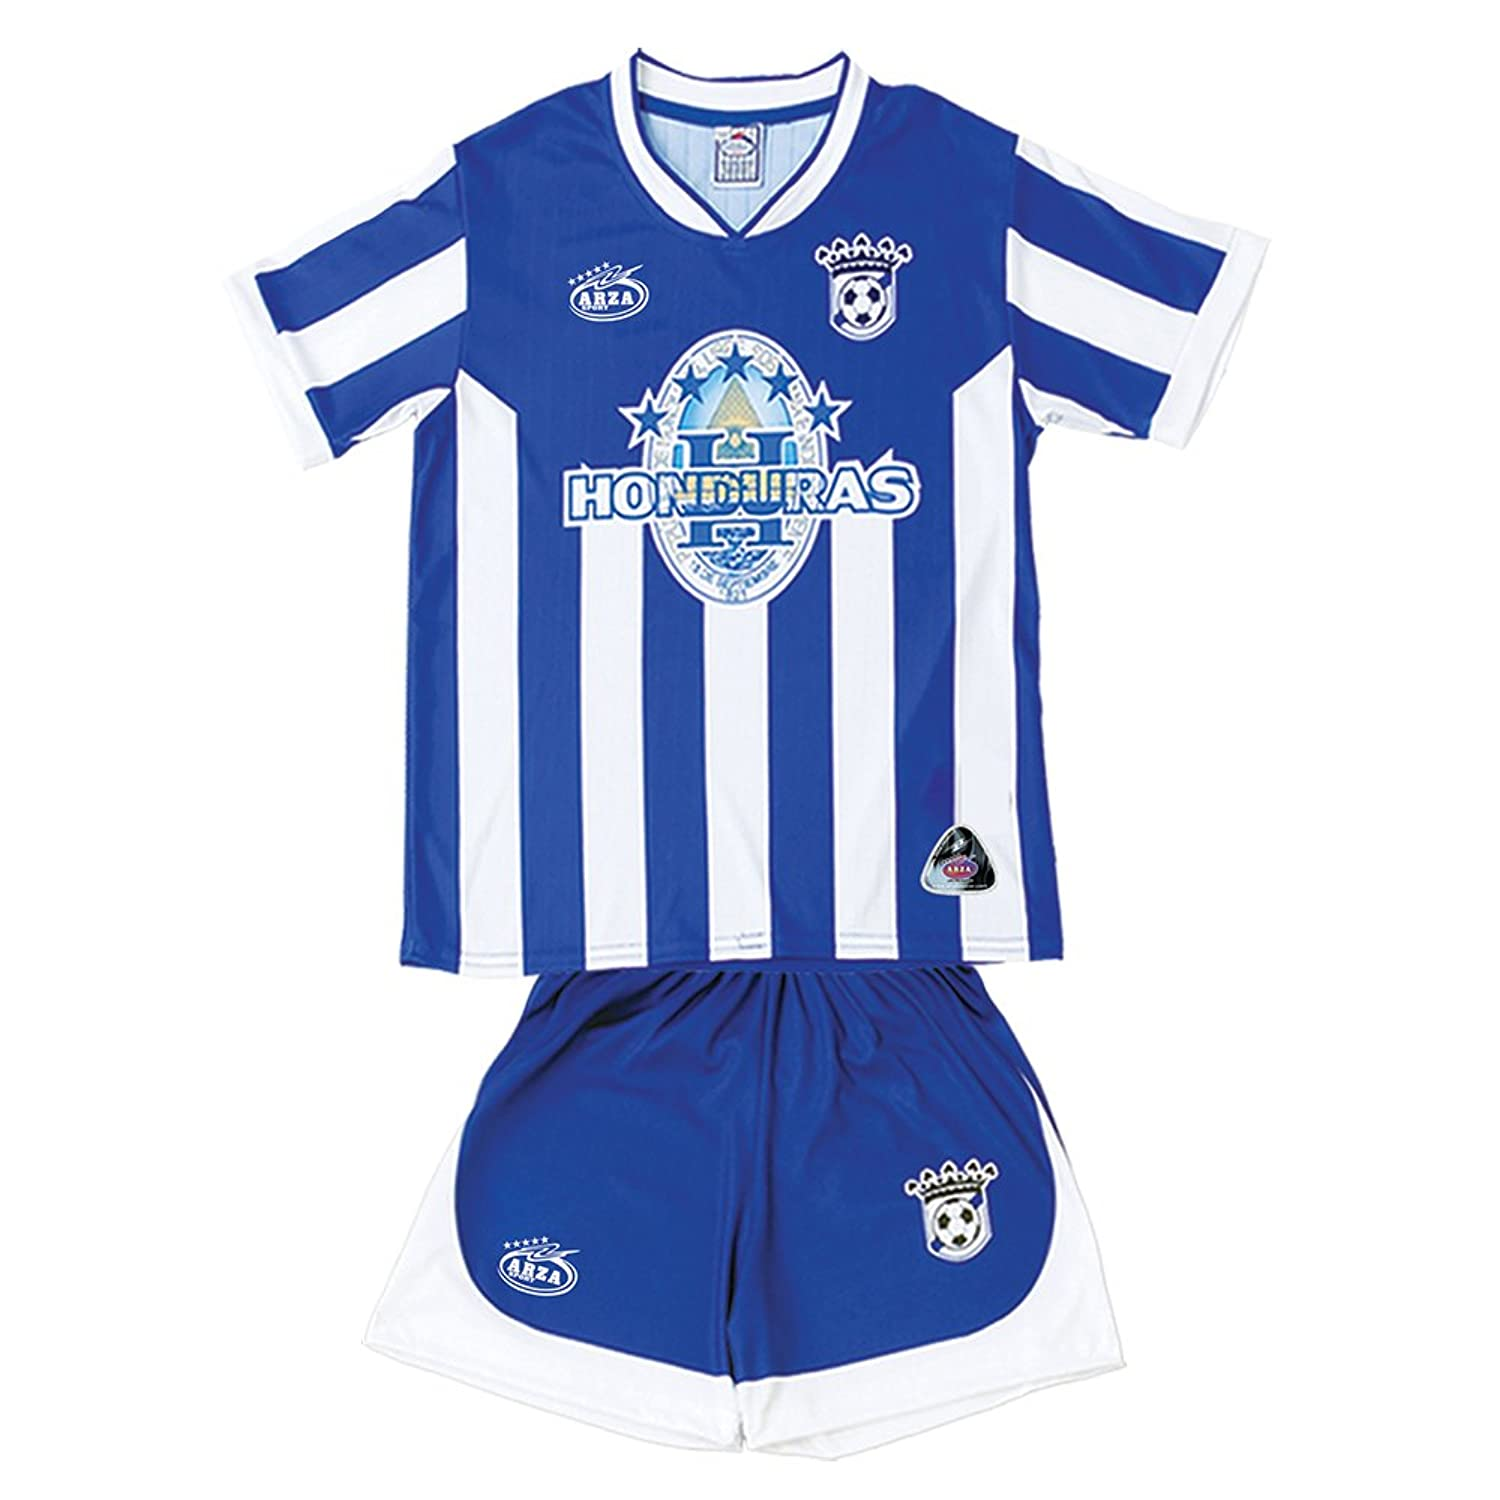 994381e07 Amazon.com  Honduras Arza Youth Soccer Uniform  Clothing